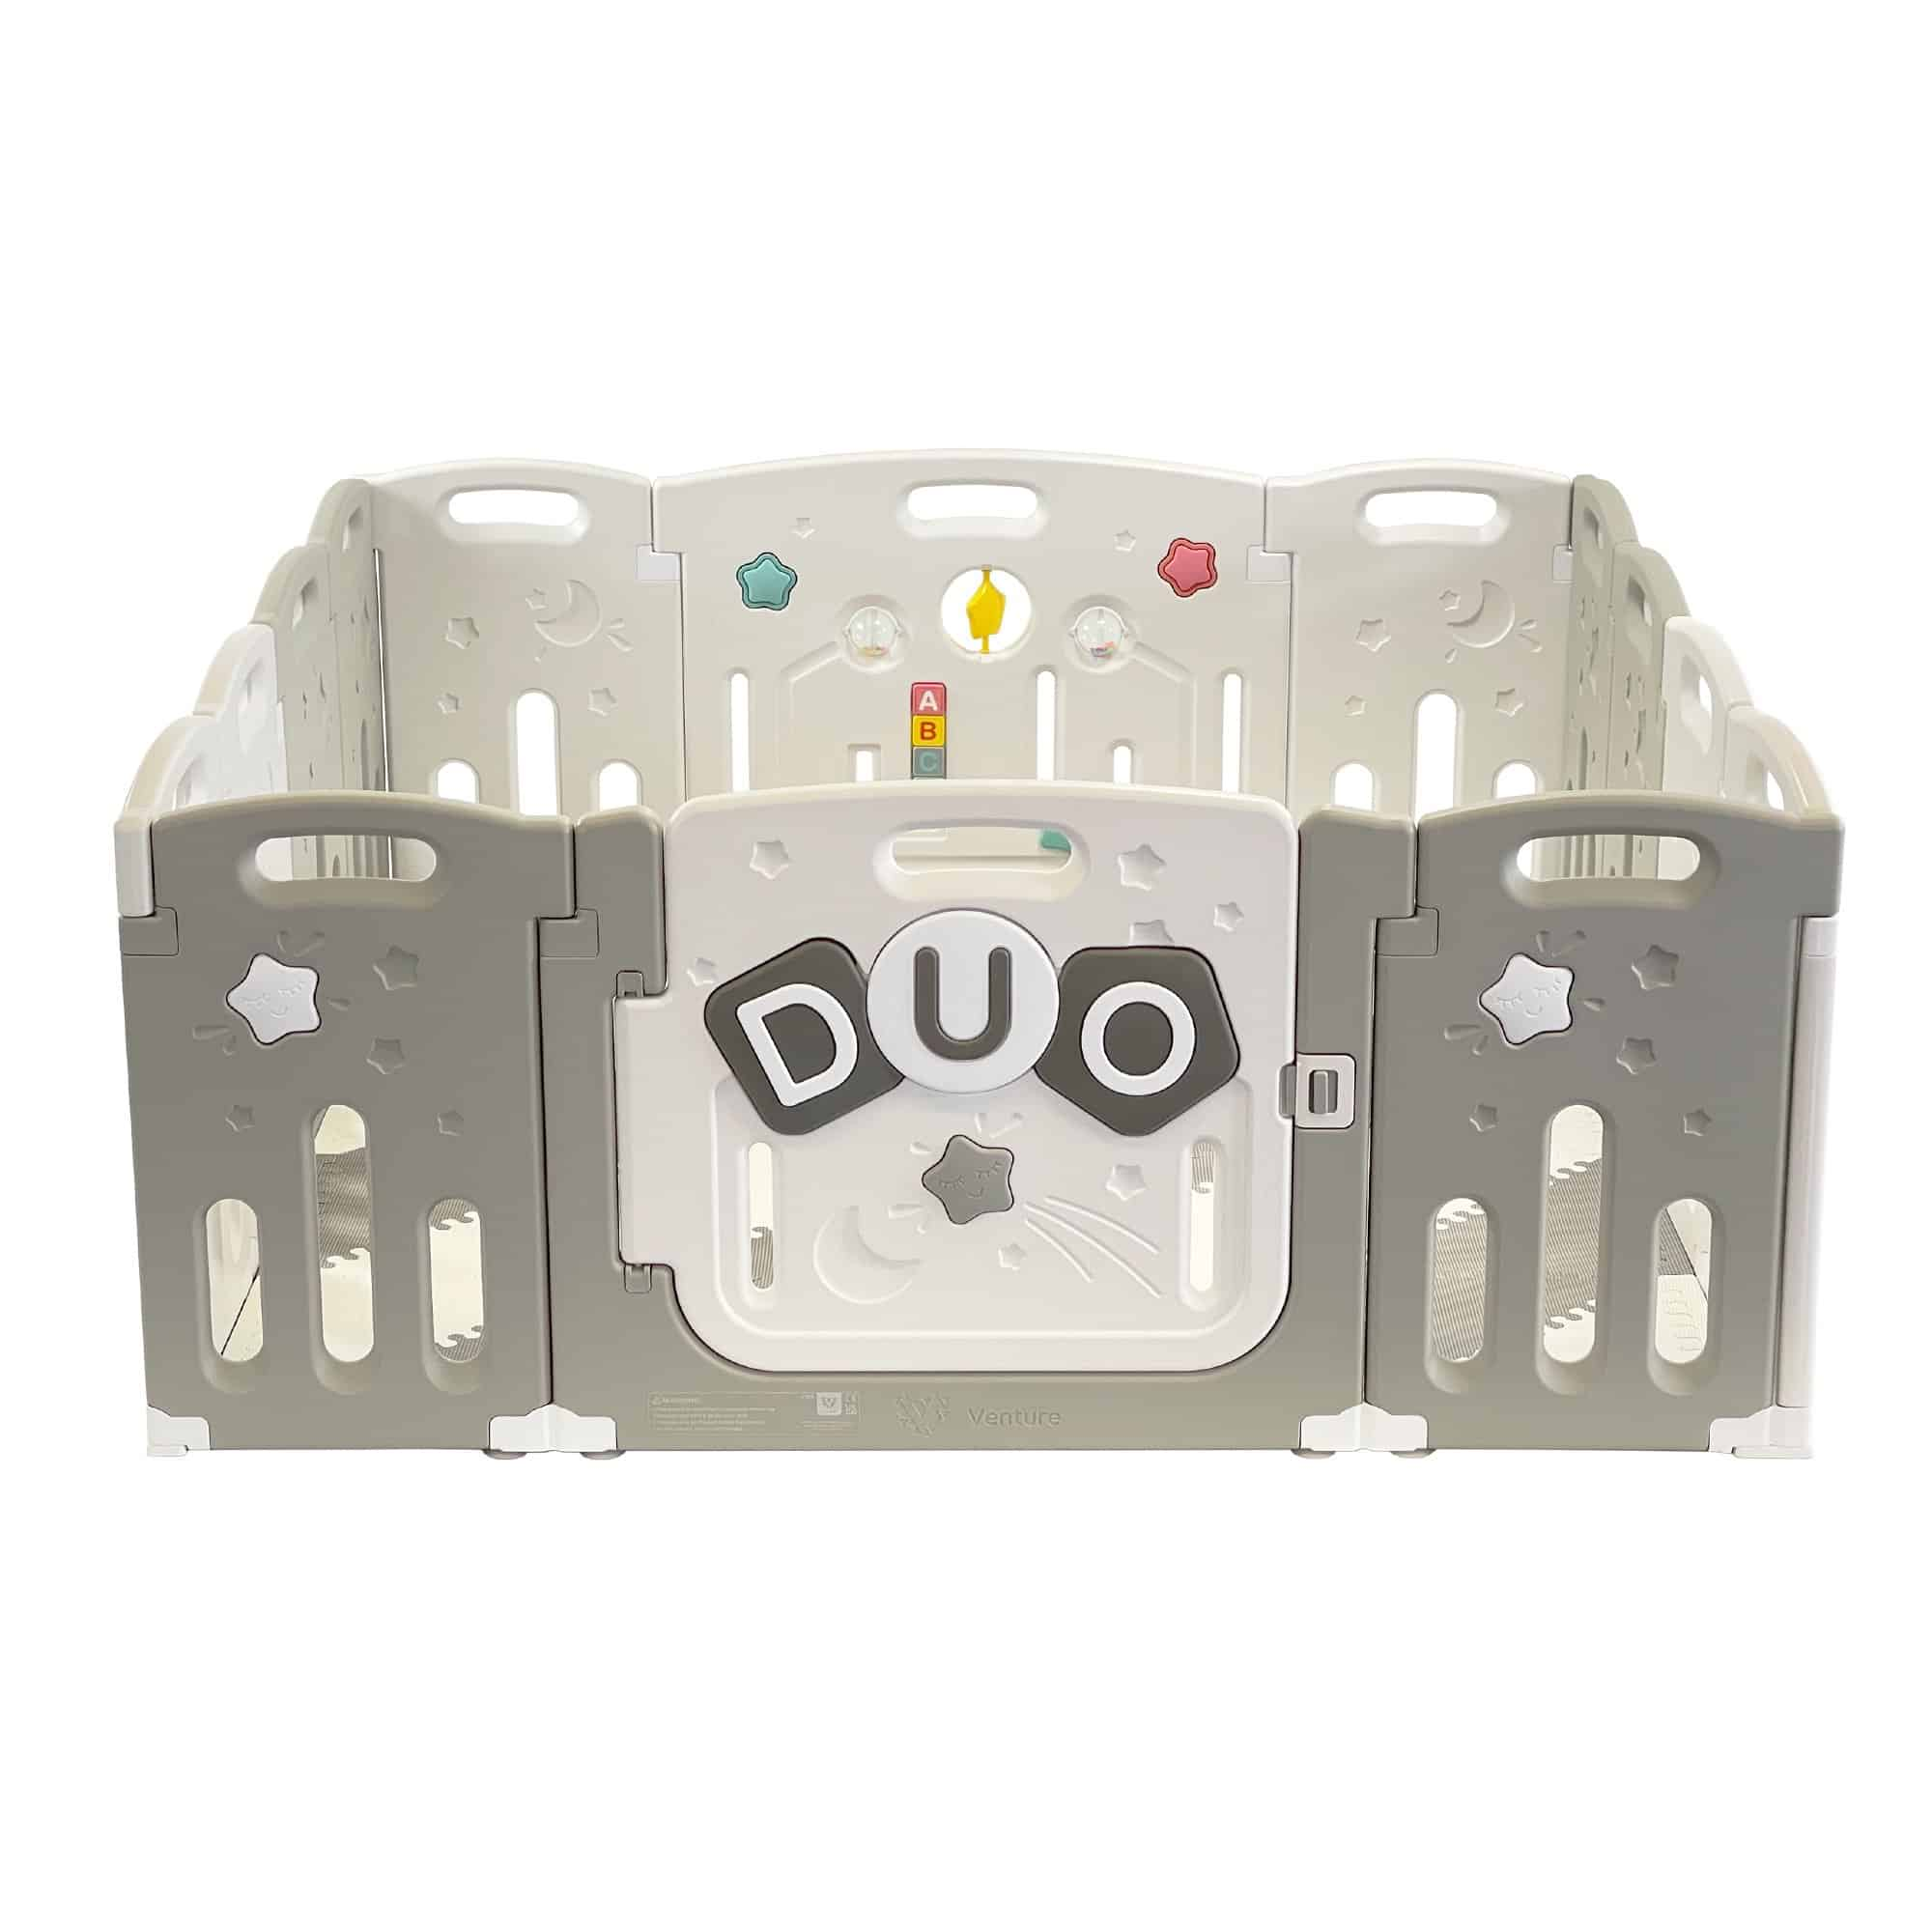 An overview of the All Stars DUO Playpen by Venture